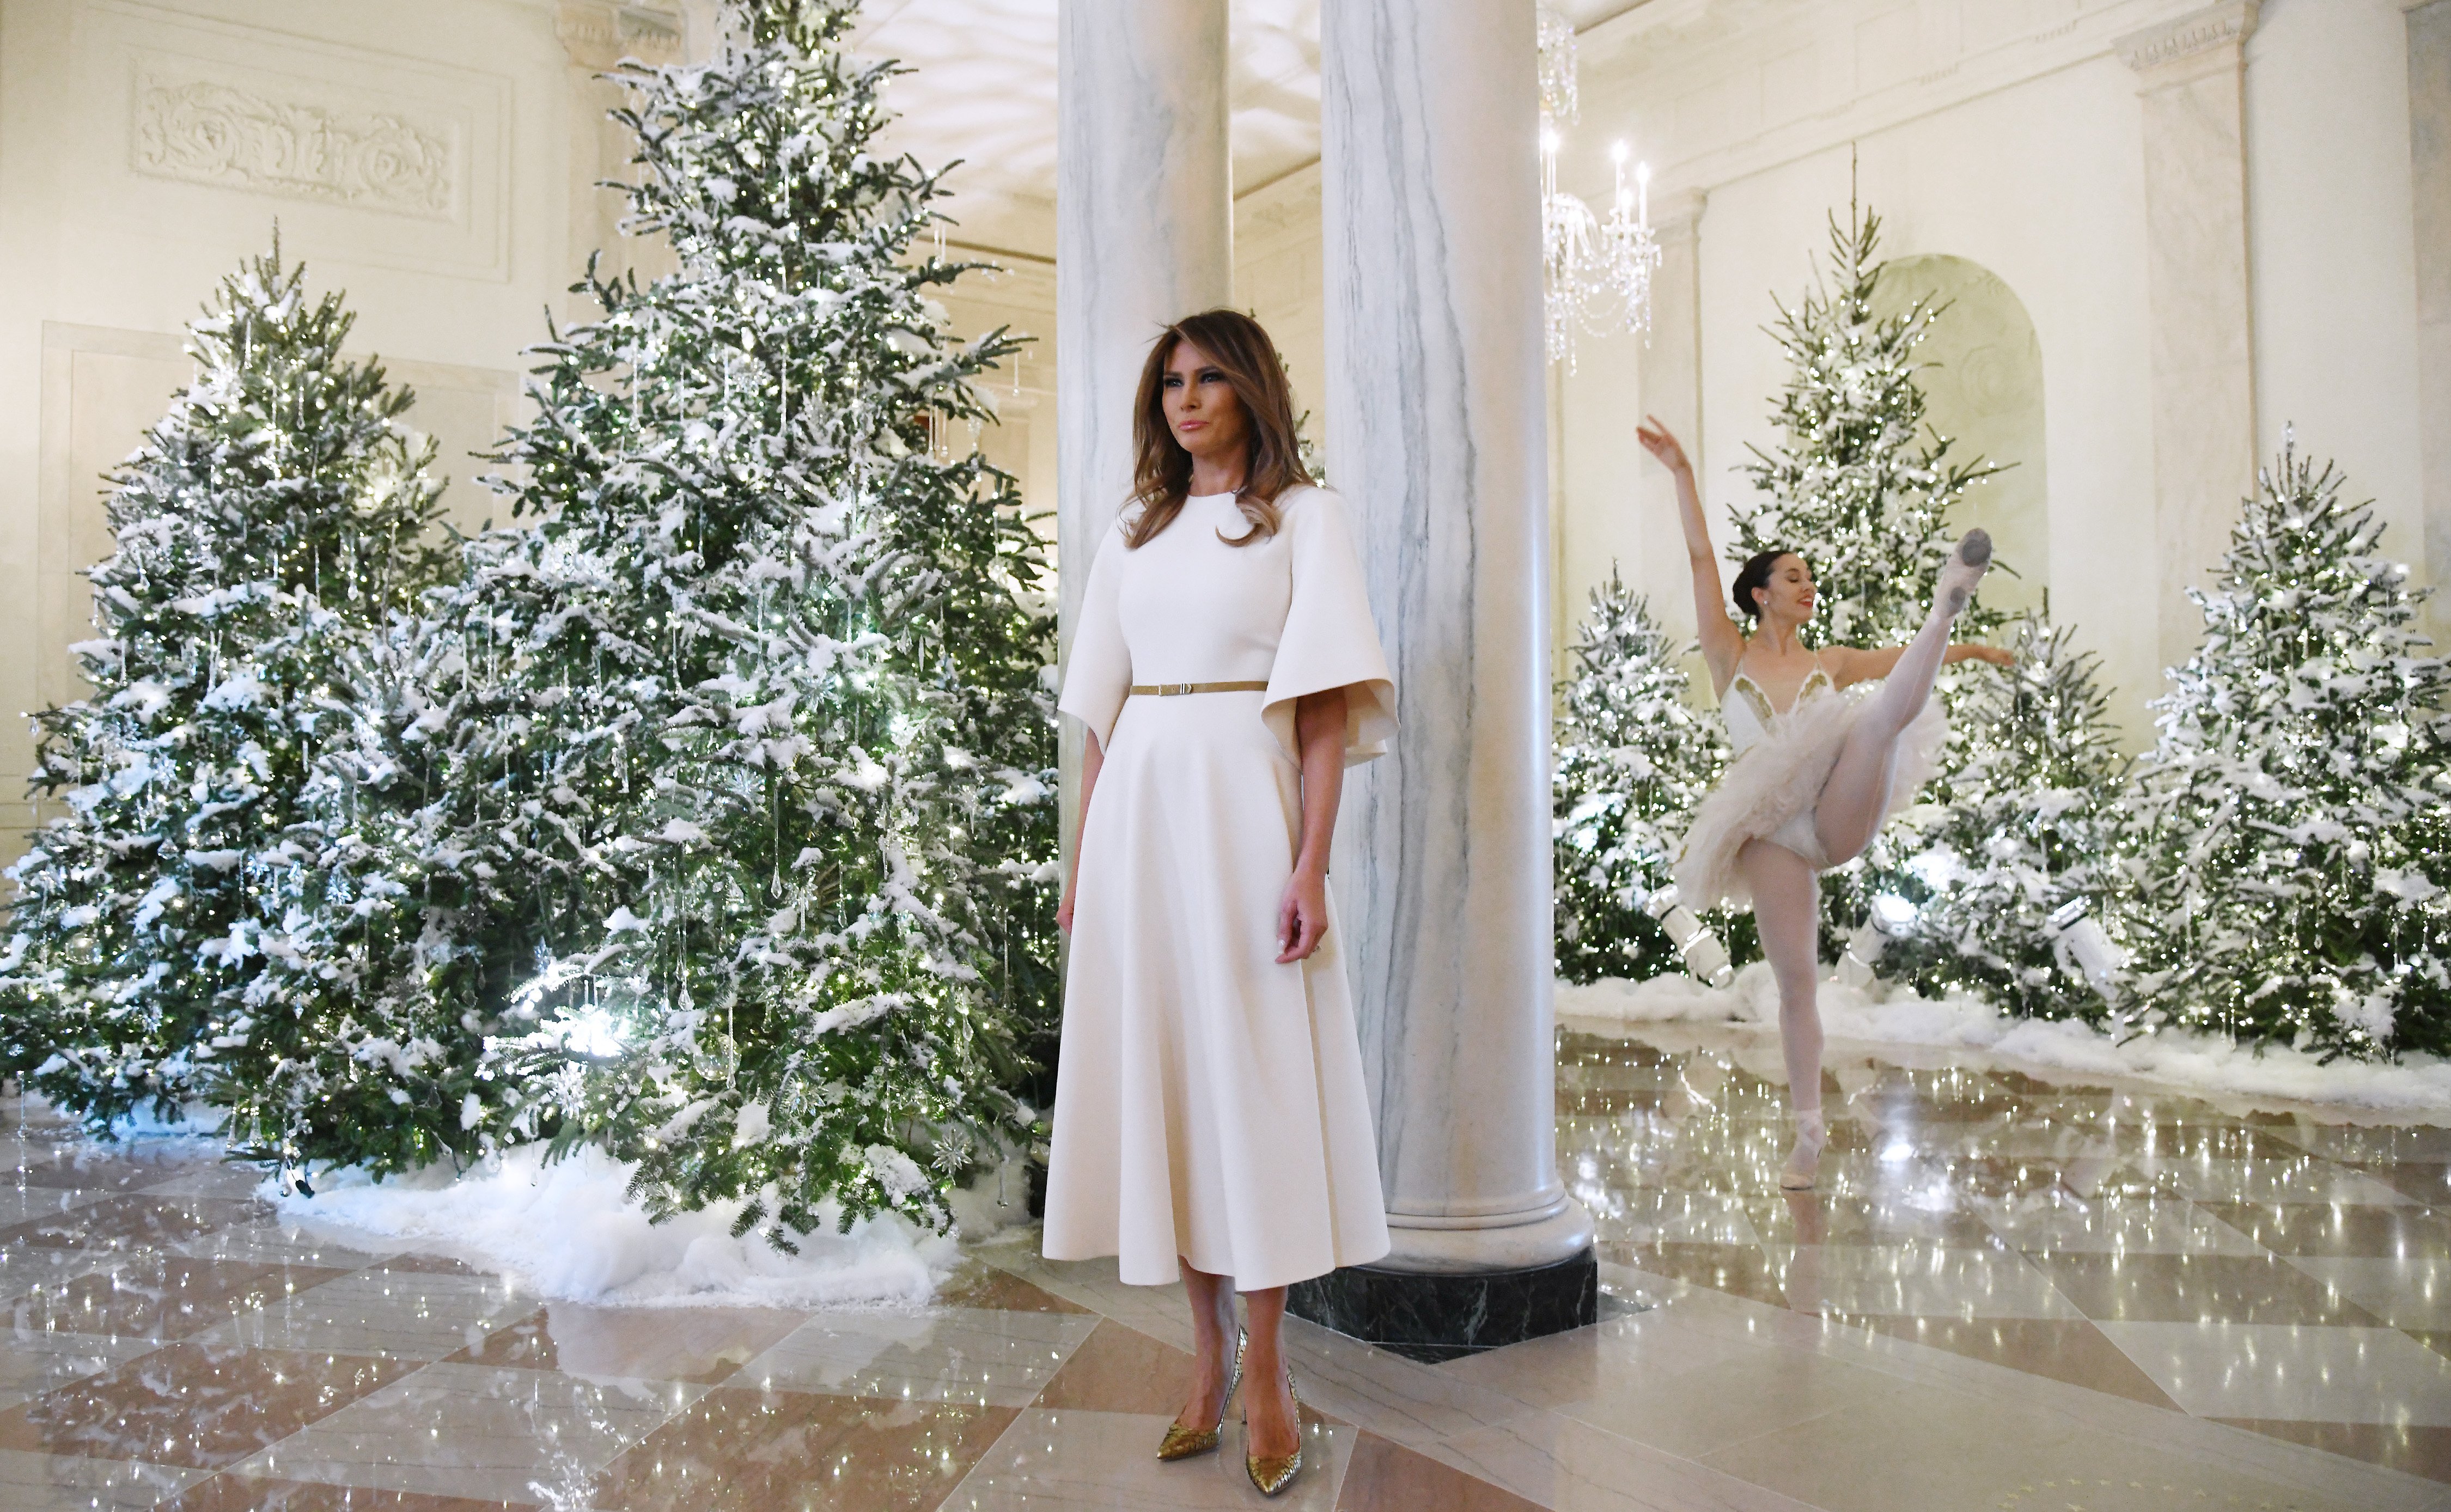 First Lady Melania Trump welcomes children and students from Joint Base Andrews to the White House to view the 2017 holiday decorations